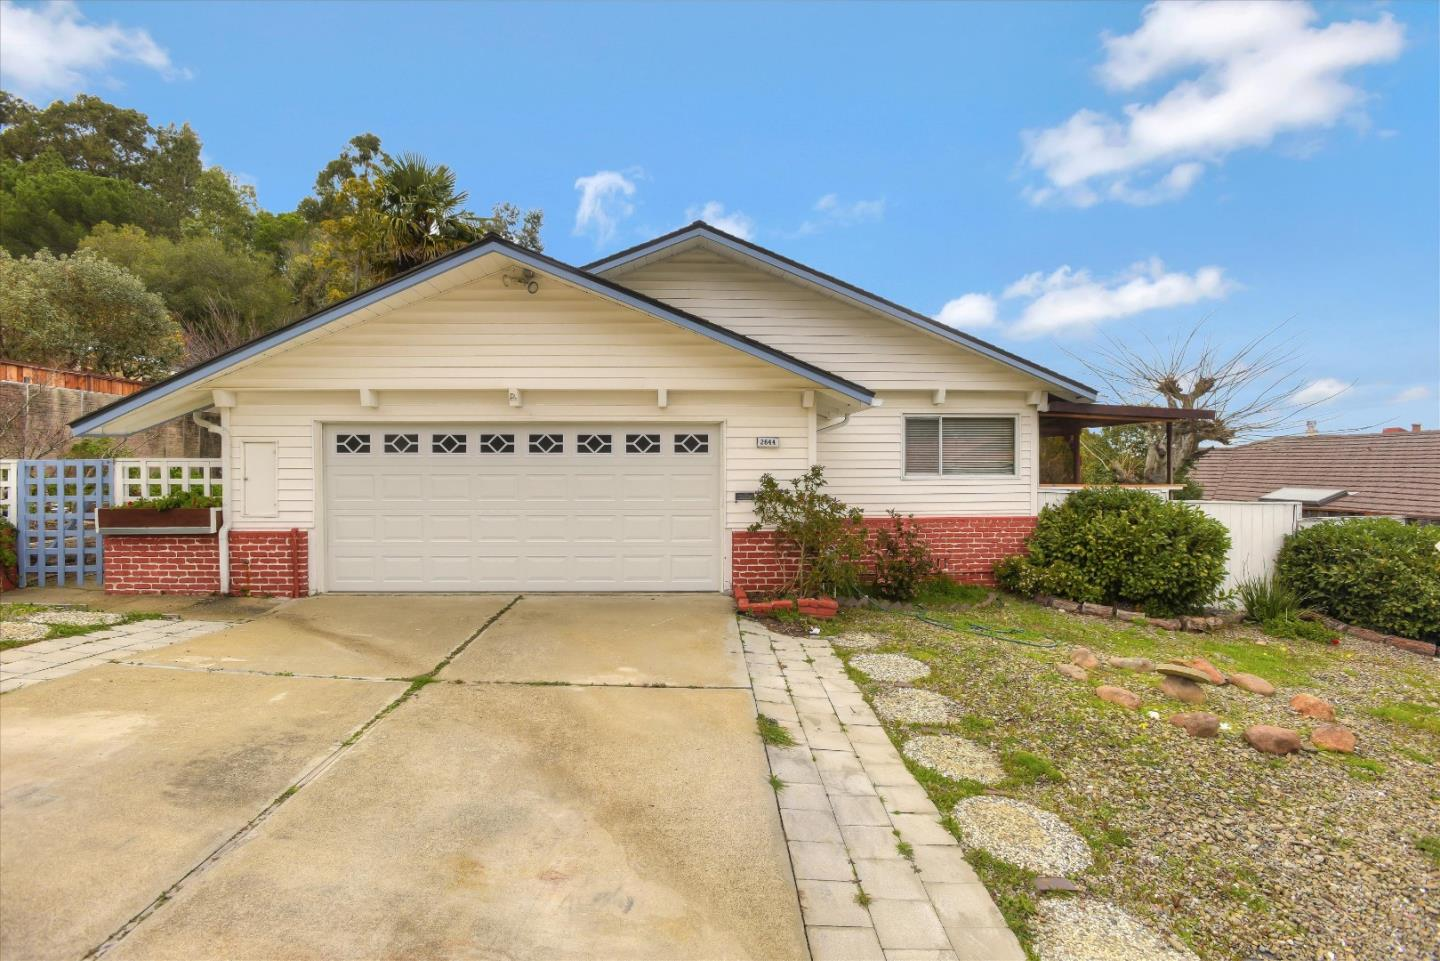 Burlingame Homes for Sale -  New Listing,  2644 Trousdale DR